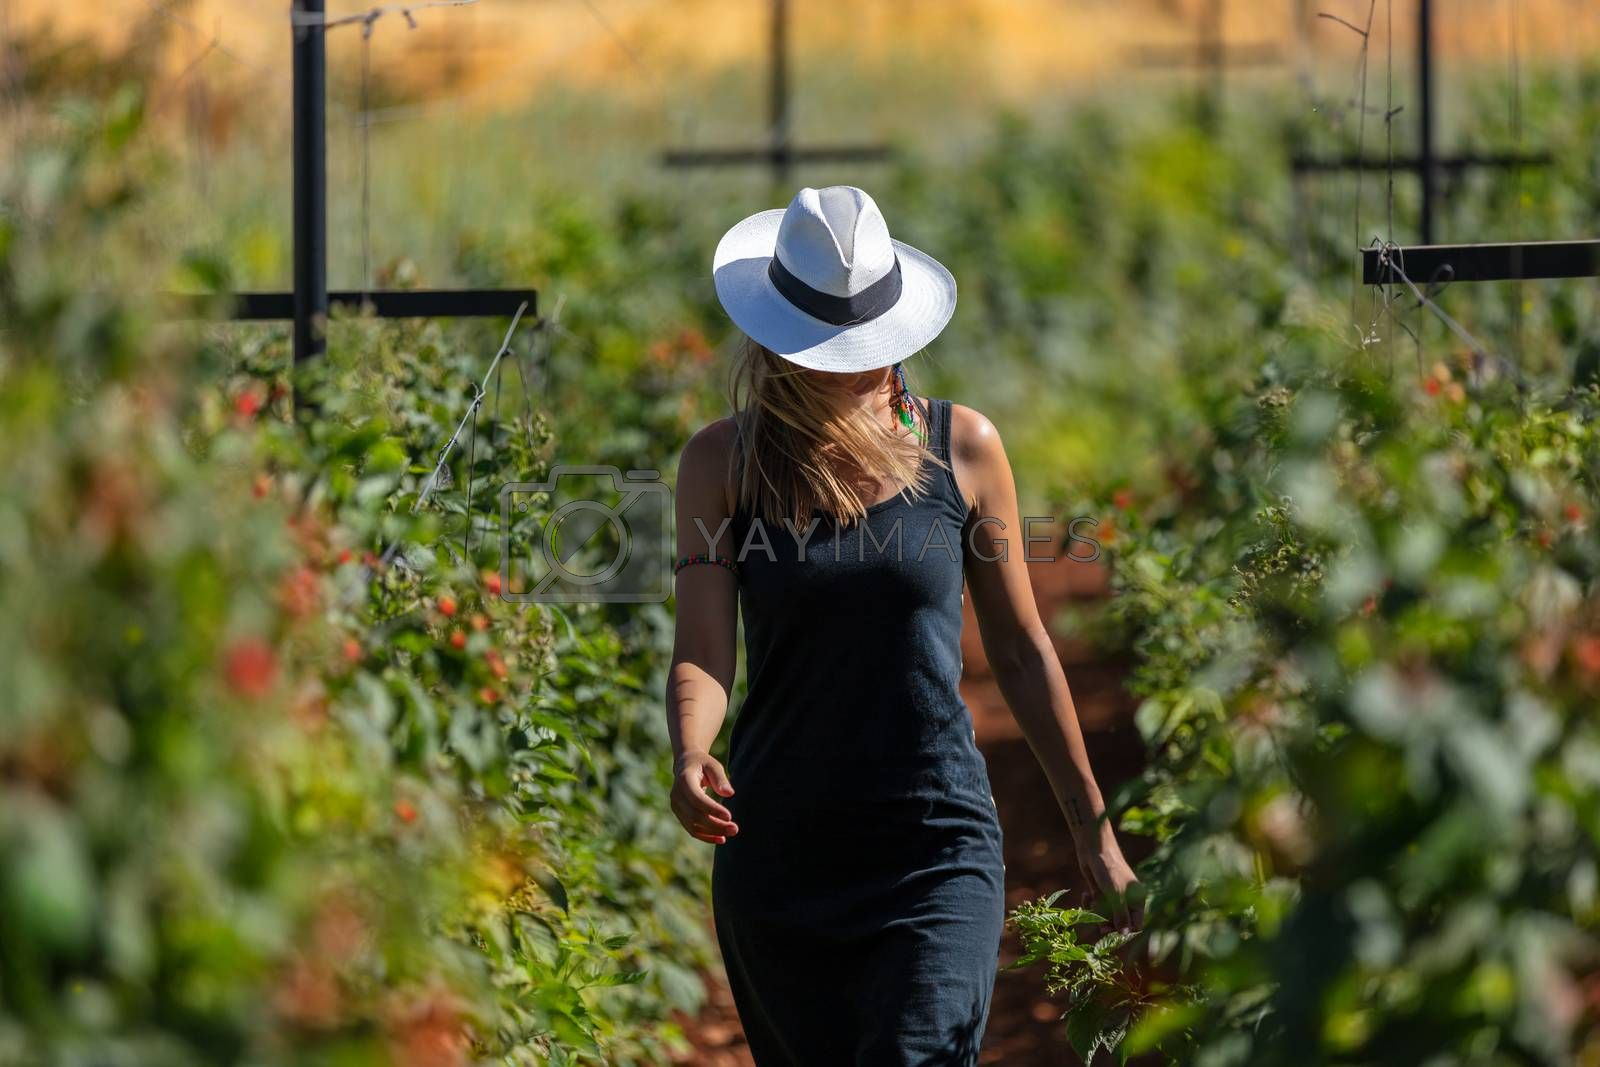 Young Stylish Girl Walking in the Ranch. Working in the Garden. Cultivation of Fruits and Vegetables. Harvest Season Concept.